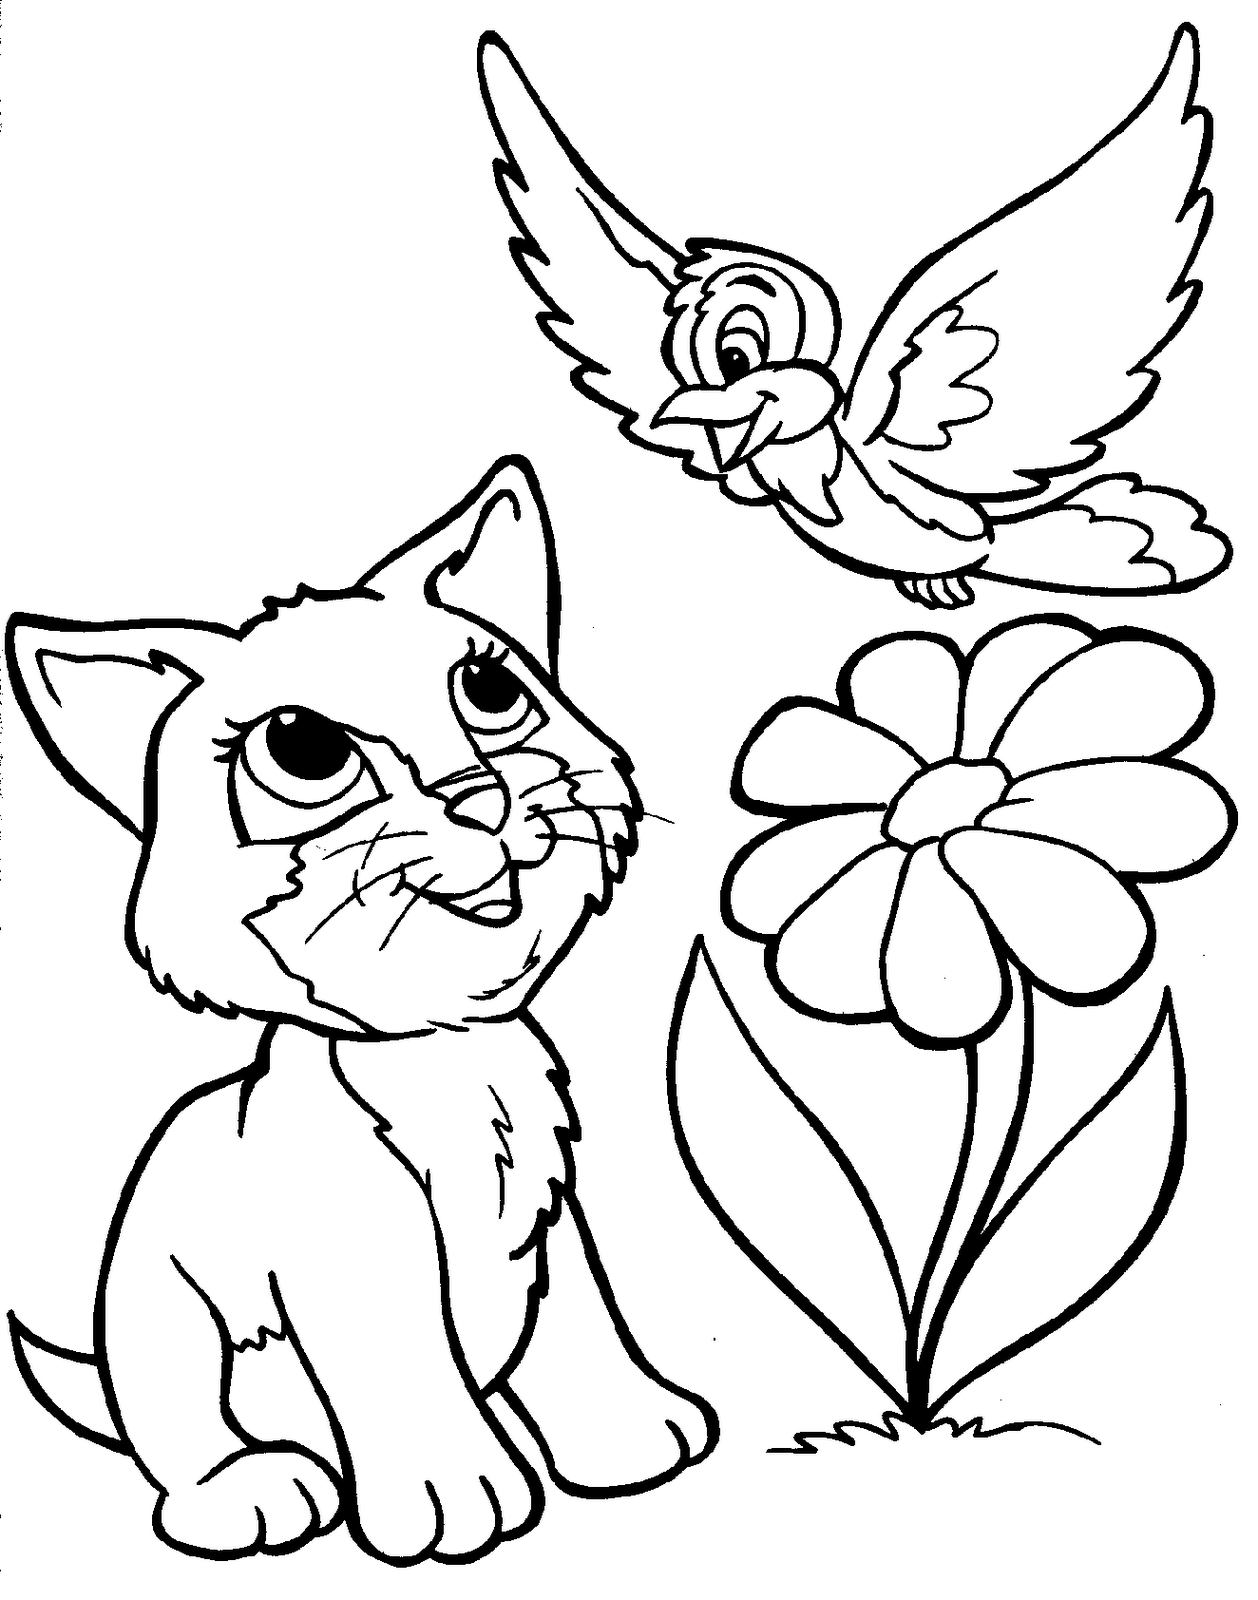 cute coloring pages animals 25 cute baby animal coloring pages ideas we need fun cute pages coloring animals